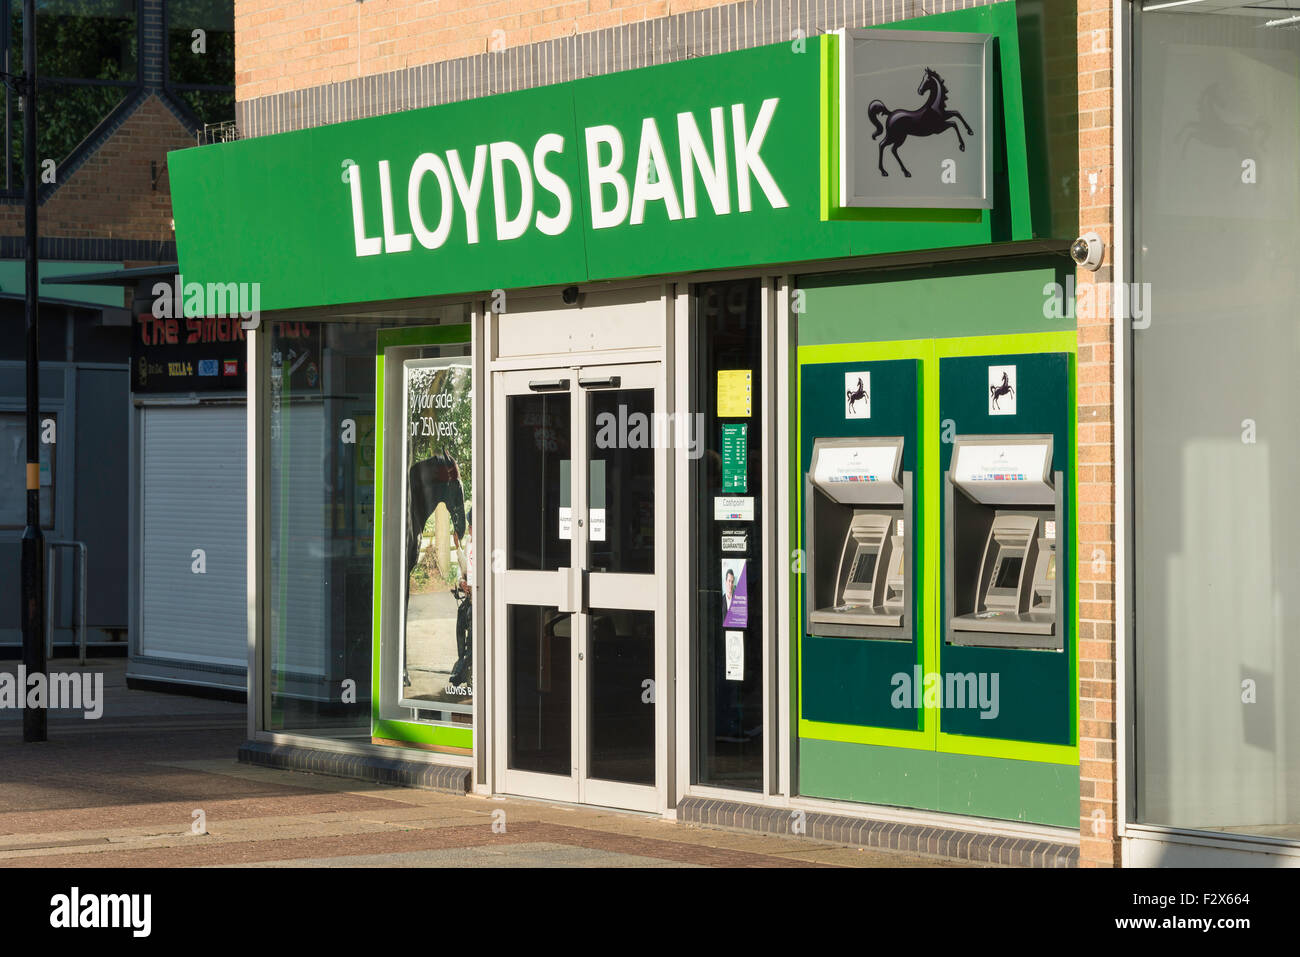 LLoyds Bank, Willow Place Shopping Centre, Corby, Northamptonshire, England, United Kingdom - Stock Image